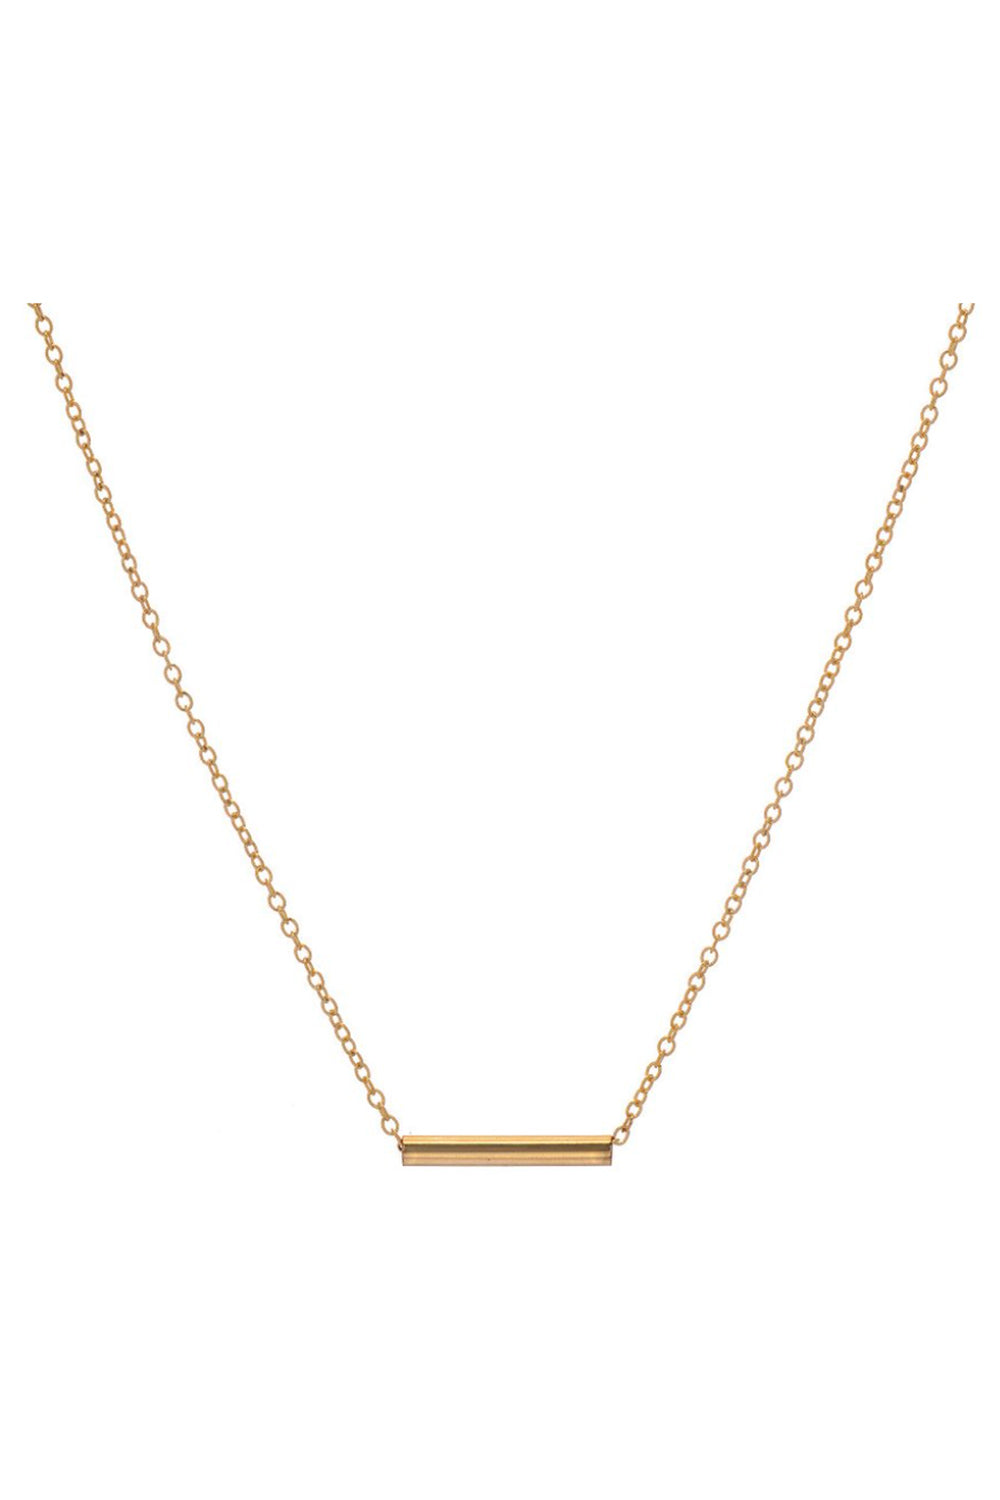 BYCHARI Pipeline Necklace in Gold Fill